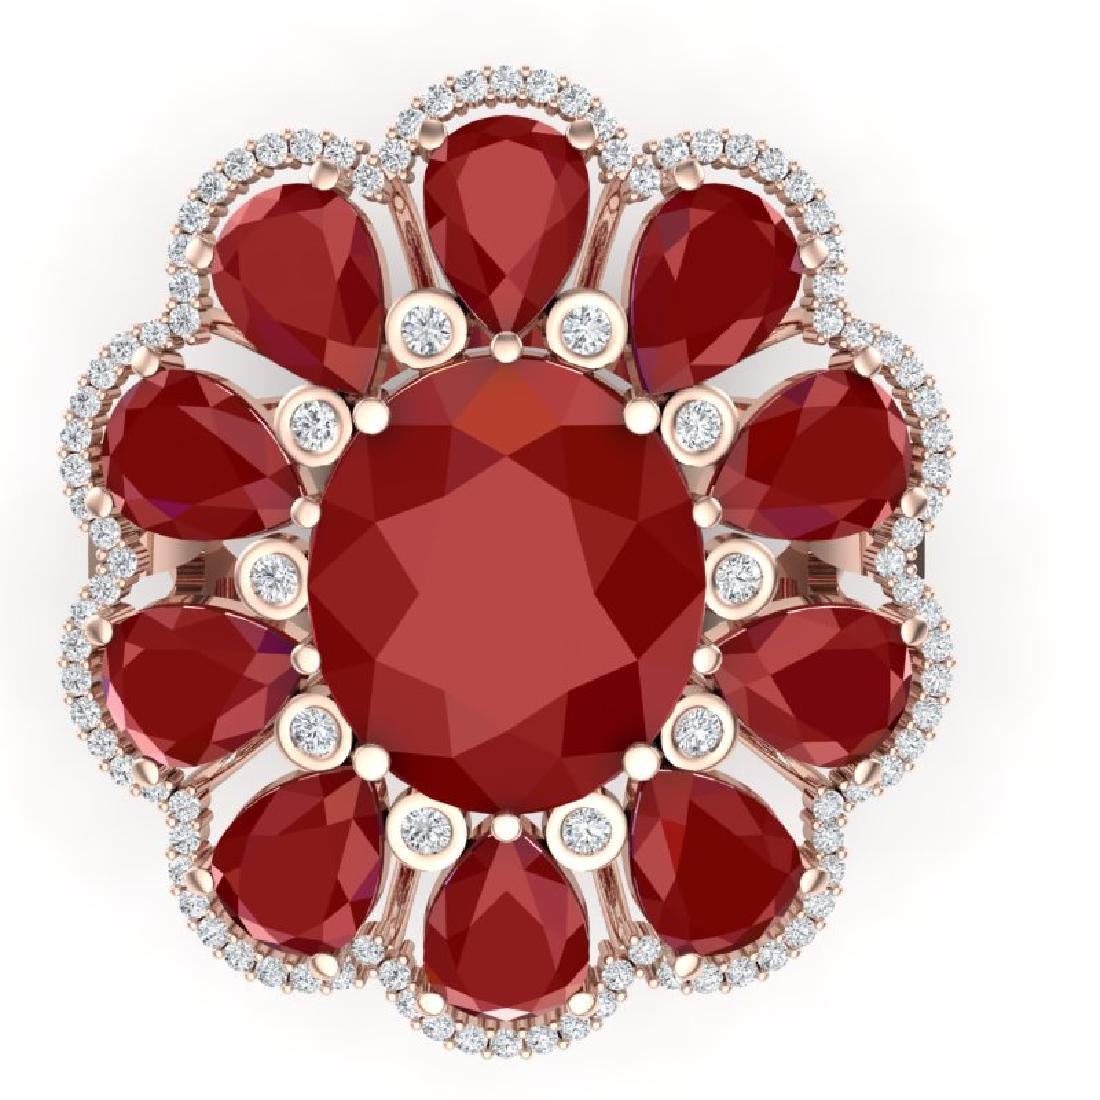 20.63 CTW Royalty Designer Ruby & VS Diamond Ring 18K - 2